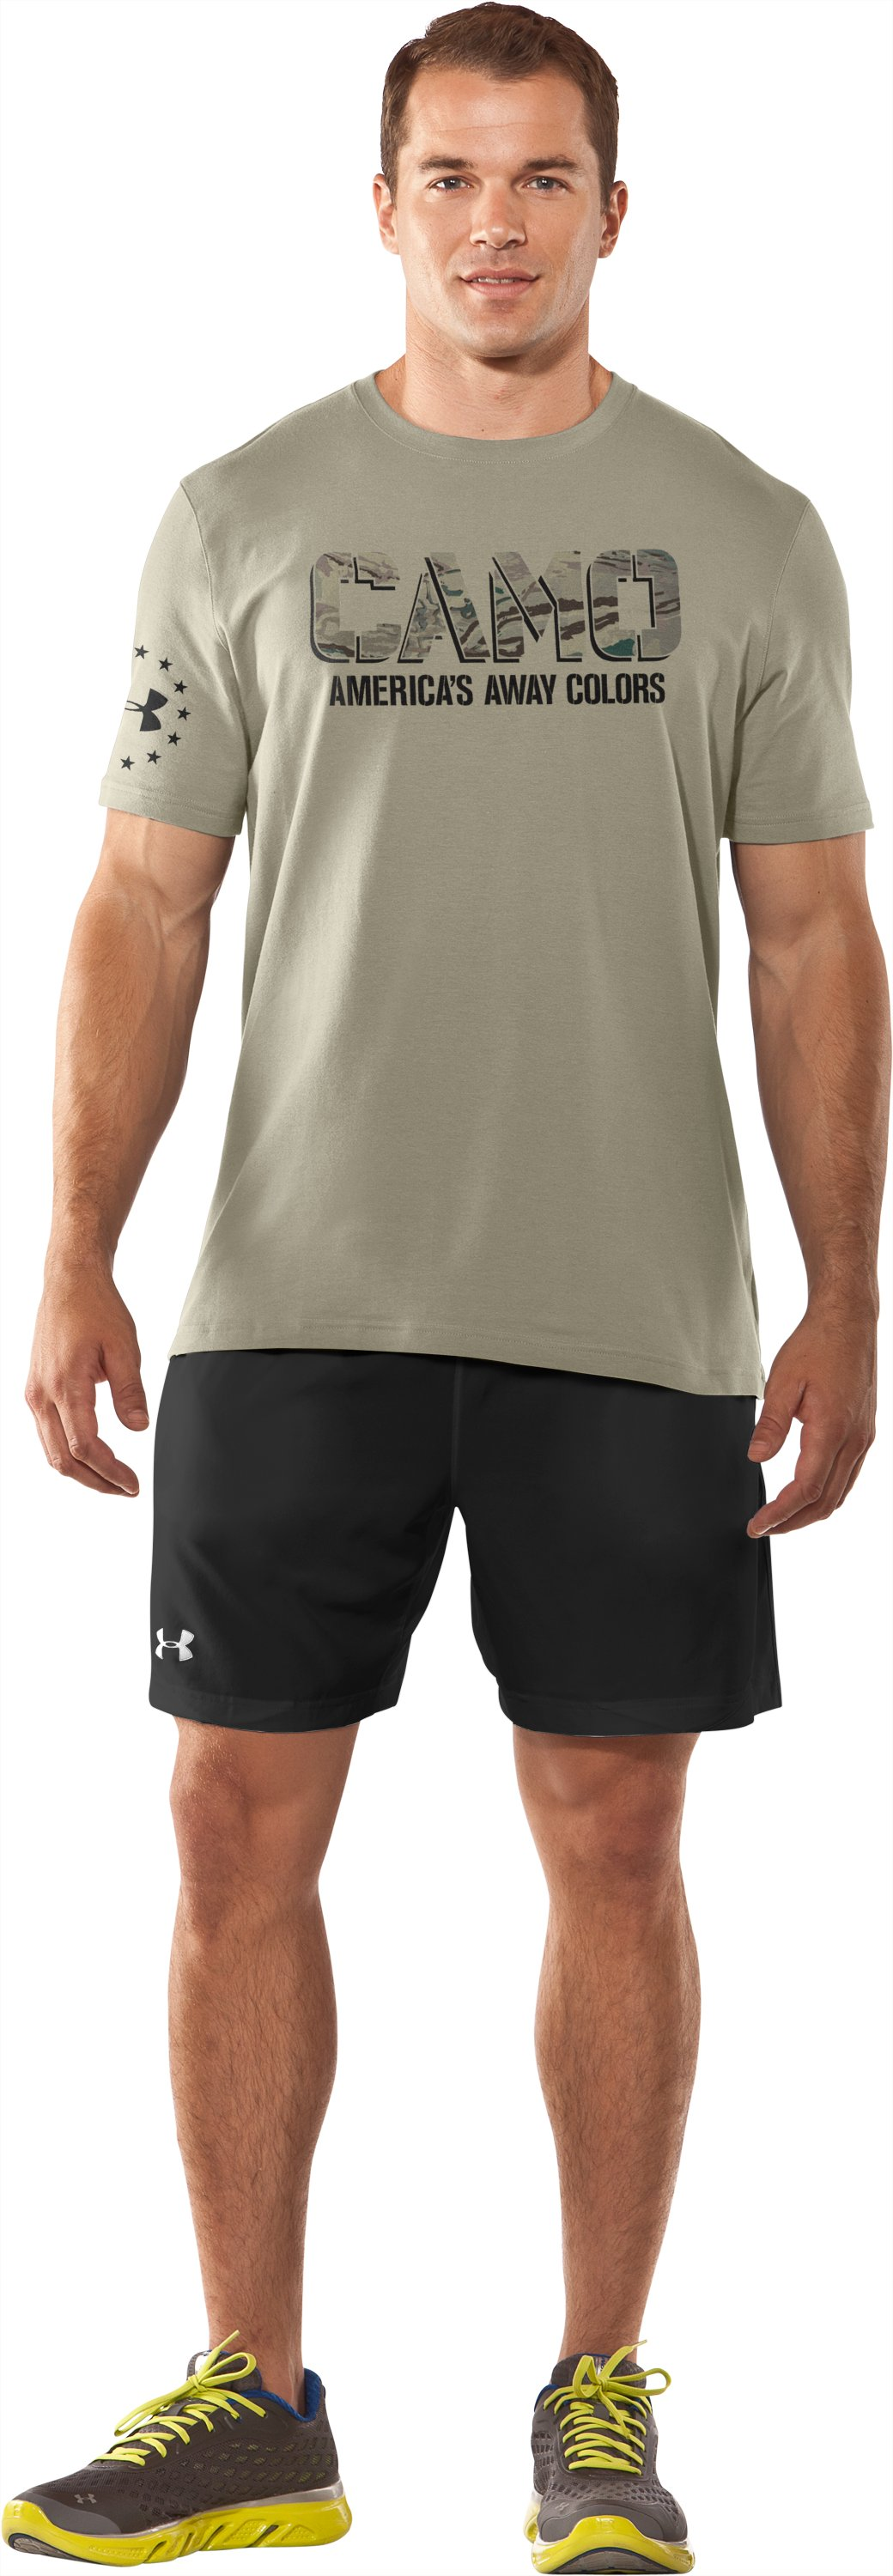 Men's USA Away Colors T-Shirt, Desert Sand, Front